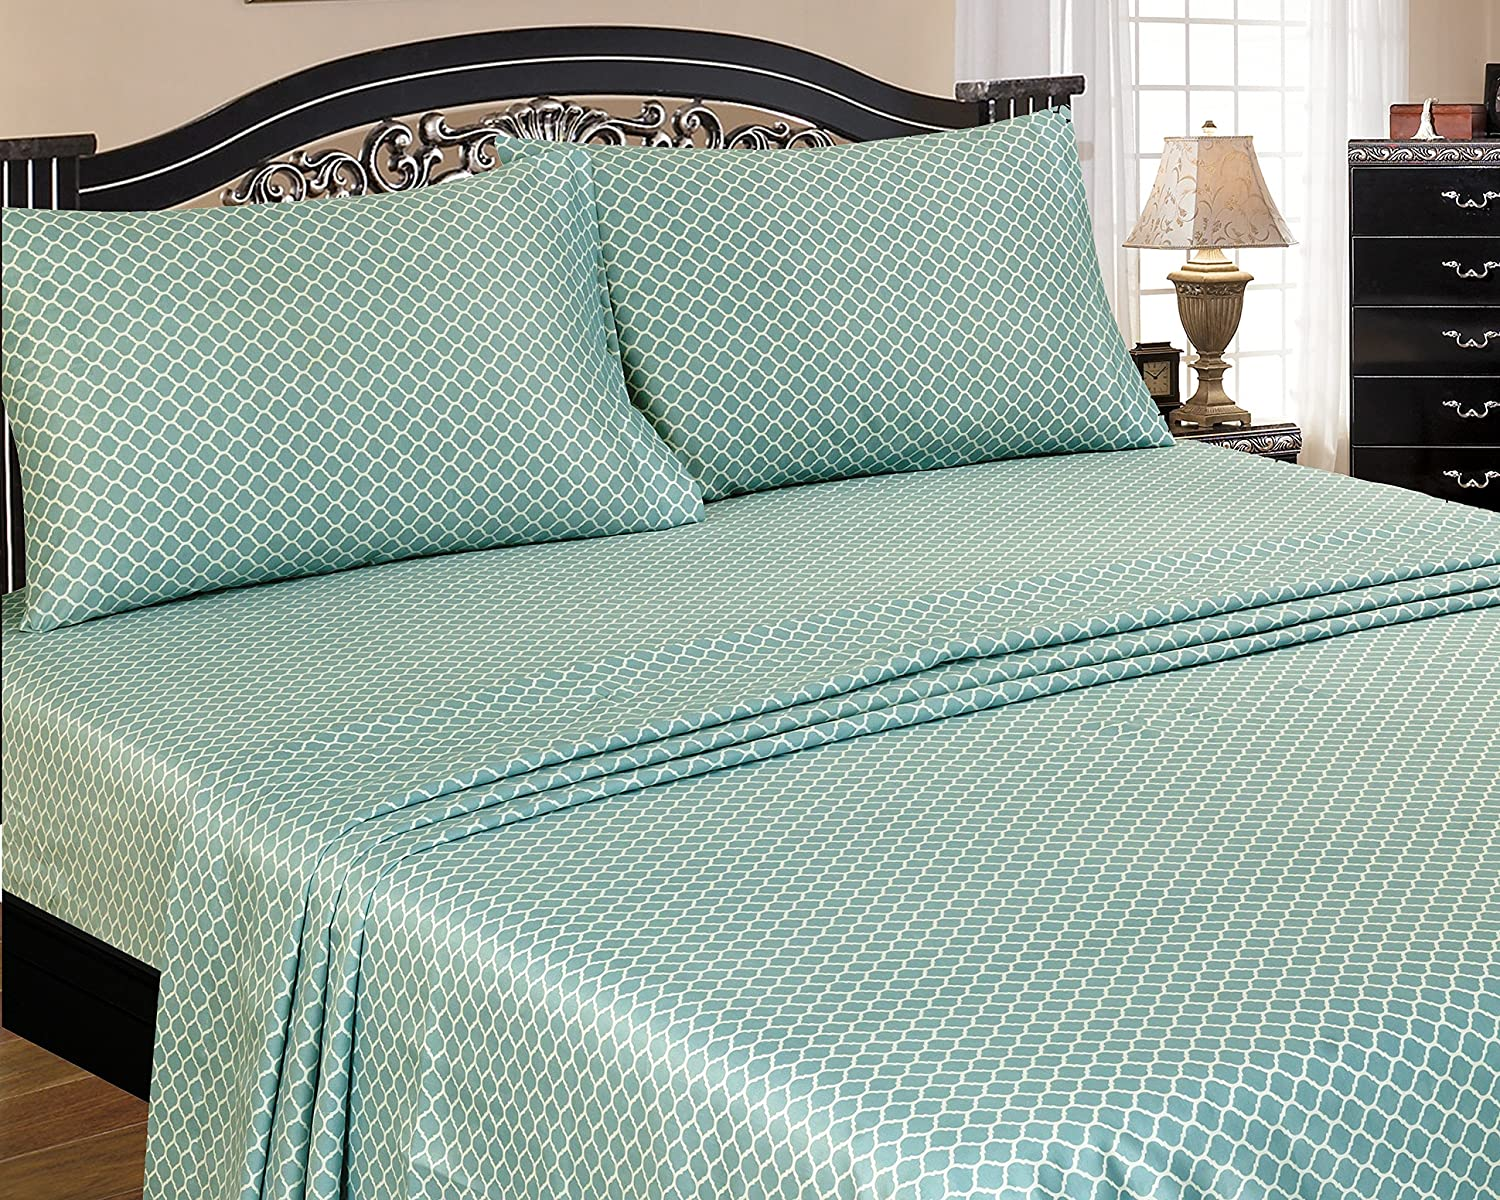 American Homes 400 Thread Count Imperial Sheet Set Queen Teal